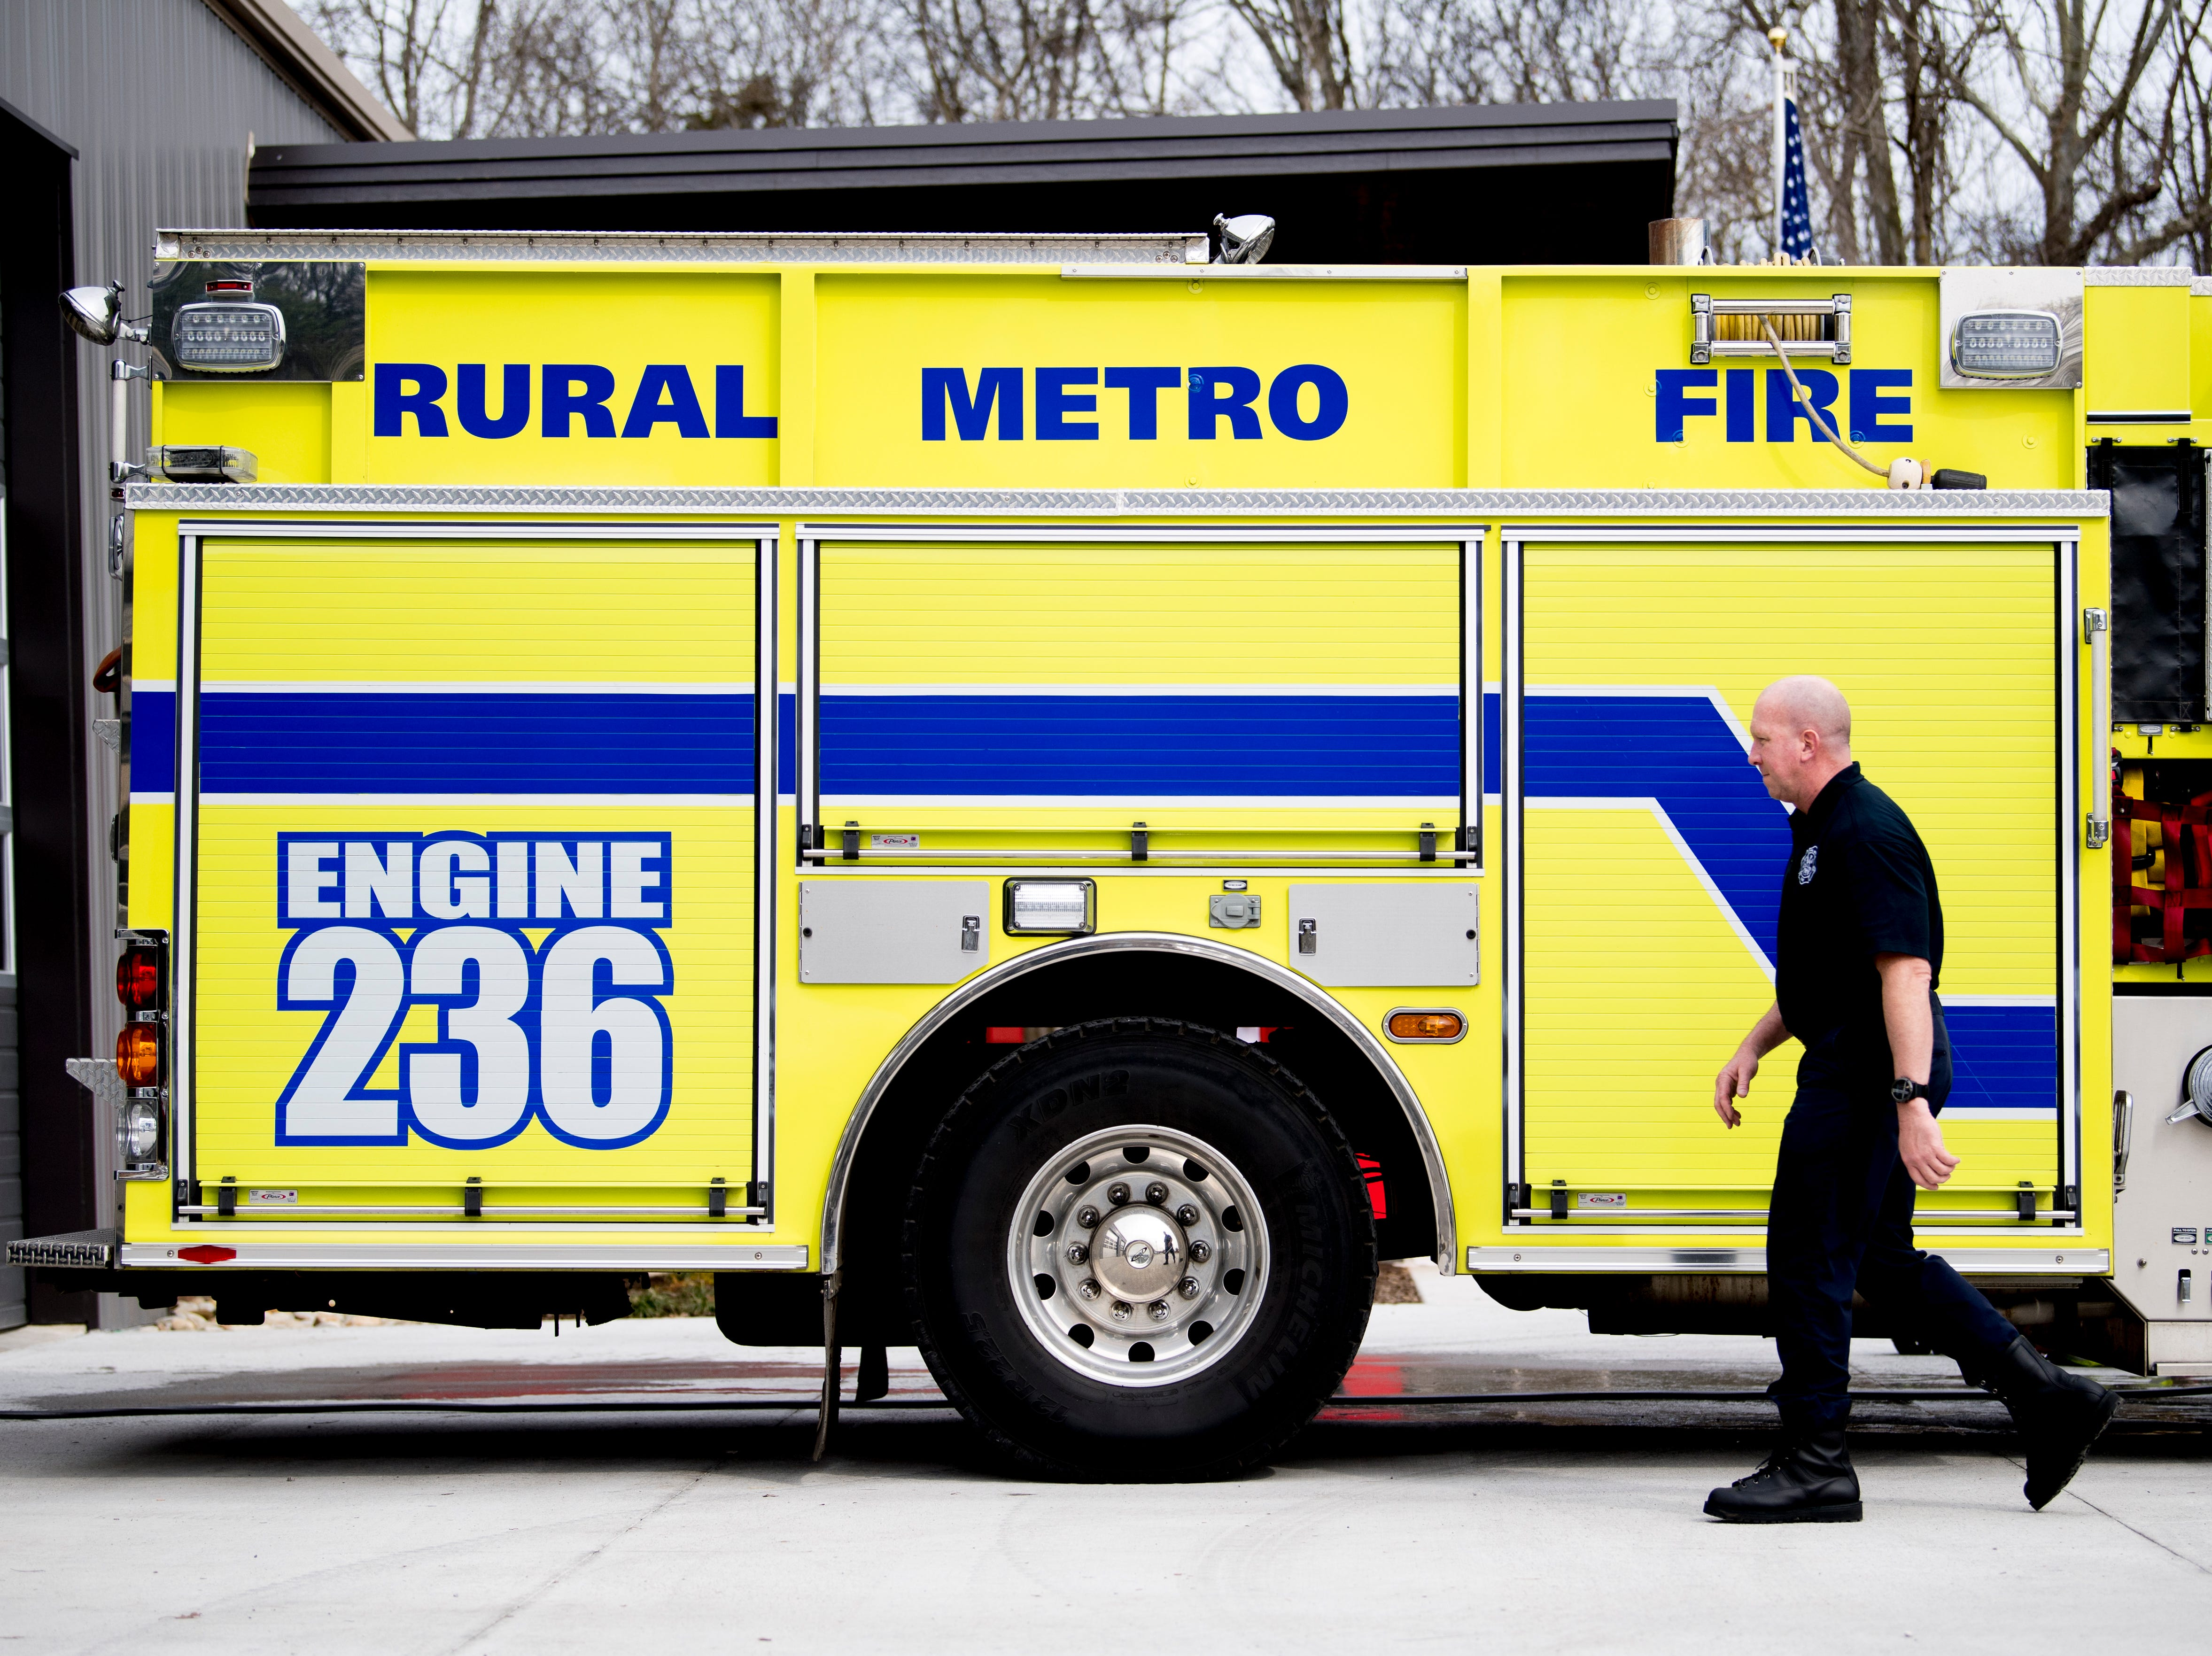 Captain Chuck McNeil walks past Engine 236 at the new Rural Metro Fire Station 36, 7615 Norman Jack Lane, in Powell, Tennessee on Wednesday, March 13, 2019. The station has been operational since early February and is hosting an open house and grand opening March 14 from 10am-7pm.